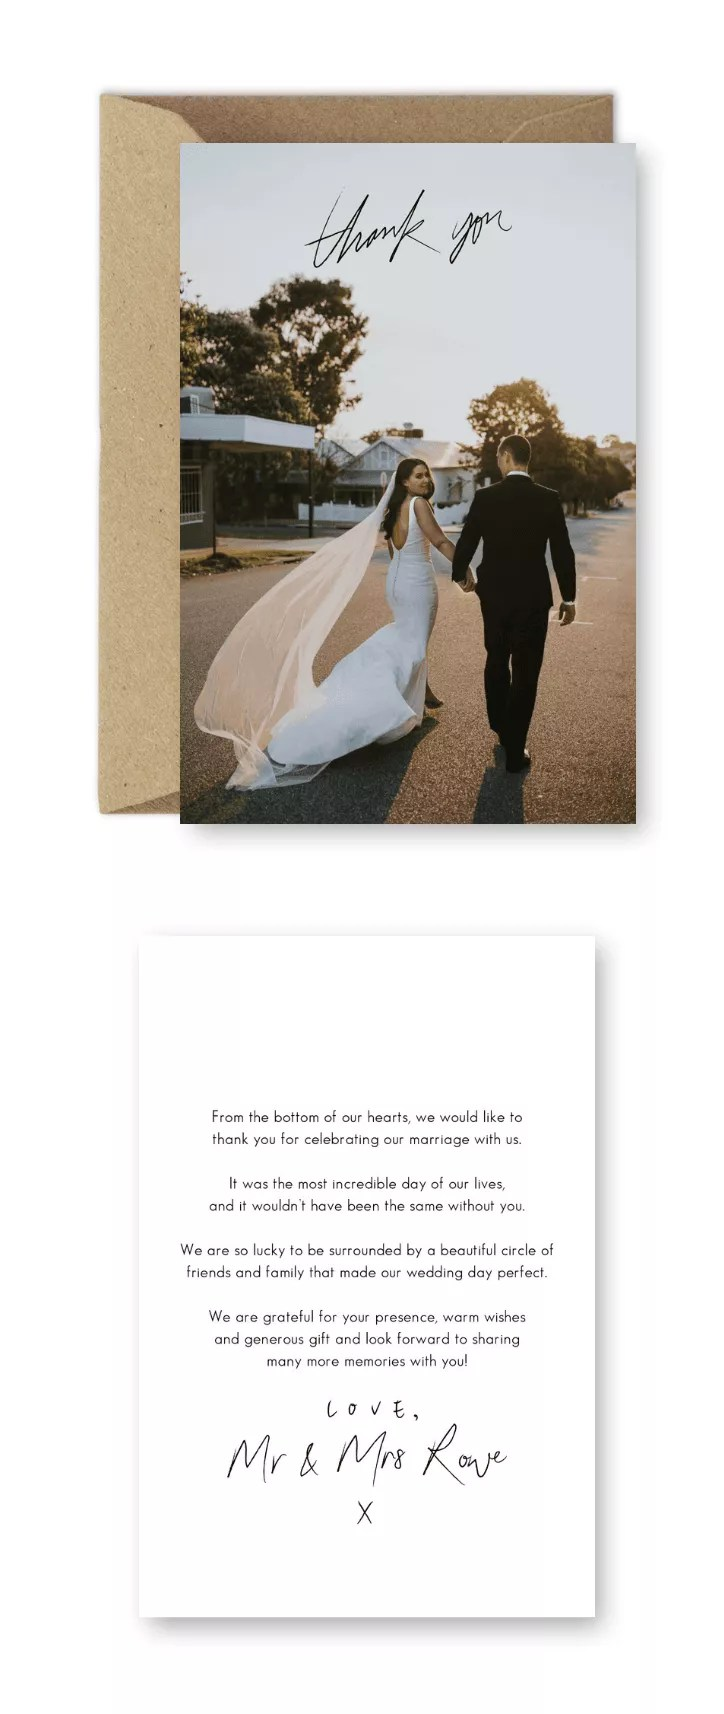 Thank You Message For Wedding Guests : thank, message, wedding, guests, Wedding, Thank, Cards, Wording, Examples